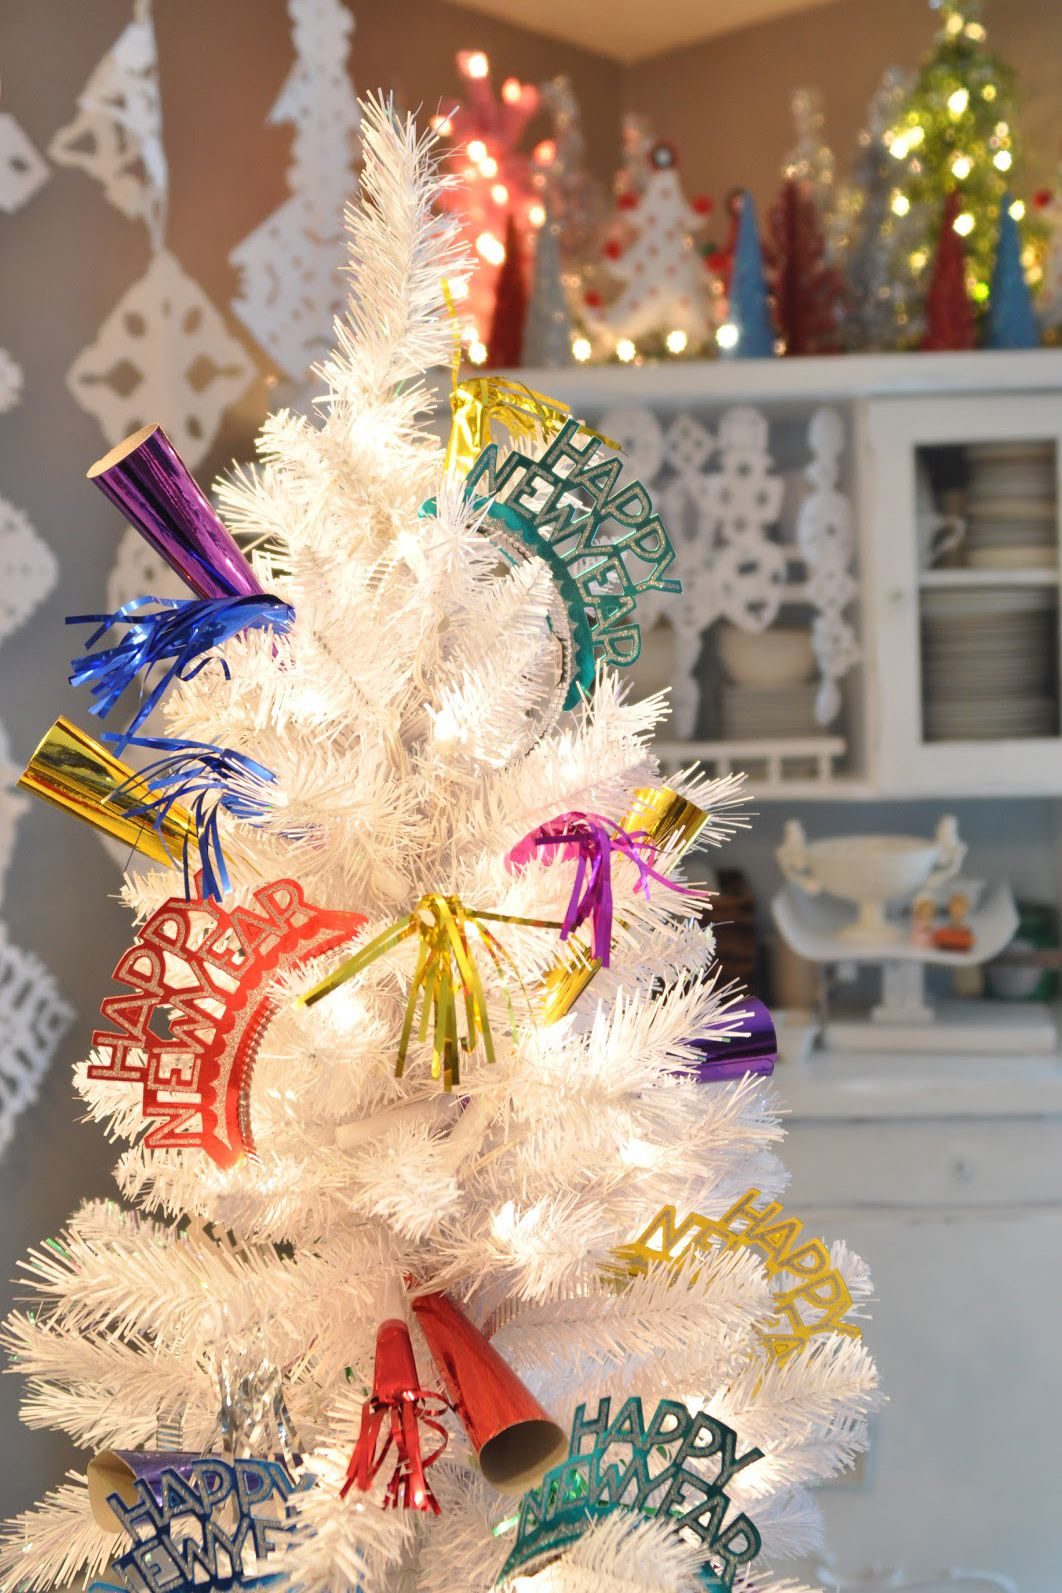 "<p>Strip your tree down to the needles and lights, and then adorn it with party poppers and streamers. It doesn't get easier than that!</p><p><em data-redactor-tag=""em""><a href=""http://www.domesticfashionista.com/2011/12/new-years-eve-tree.html"" target=""_blank"" data-tracking-id=""recirc-text-link"" data-href=""http://www.domesticfashionista.com/2011/12/new-years-eve-tree.html"">Get the tutorial from Domestic Fashionista »</a></em></p>"